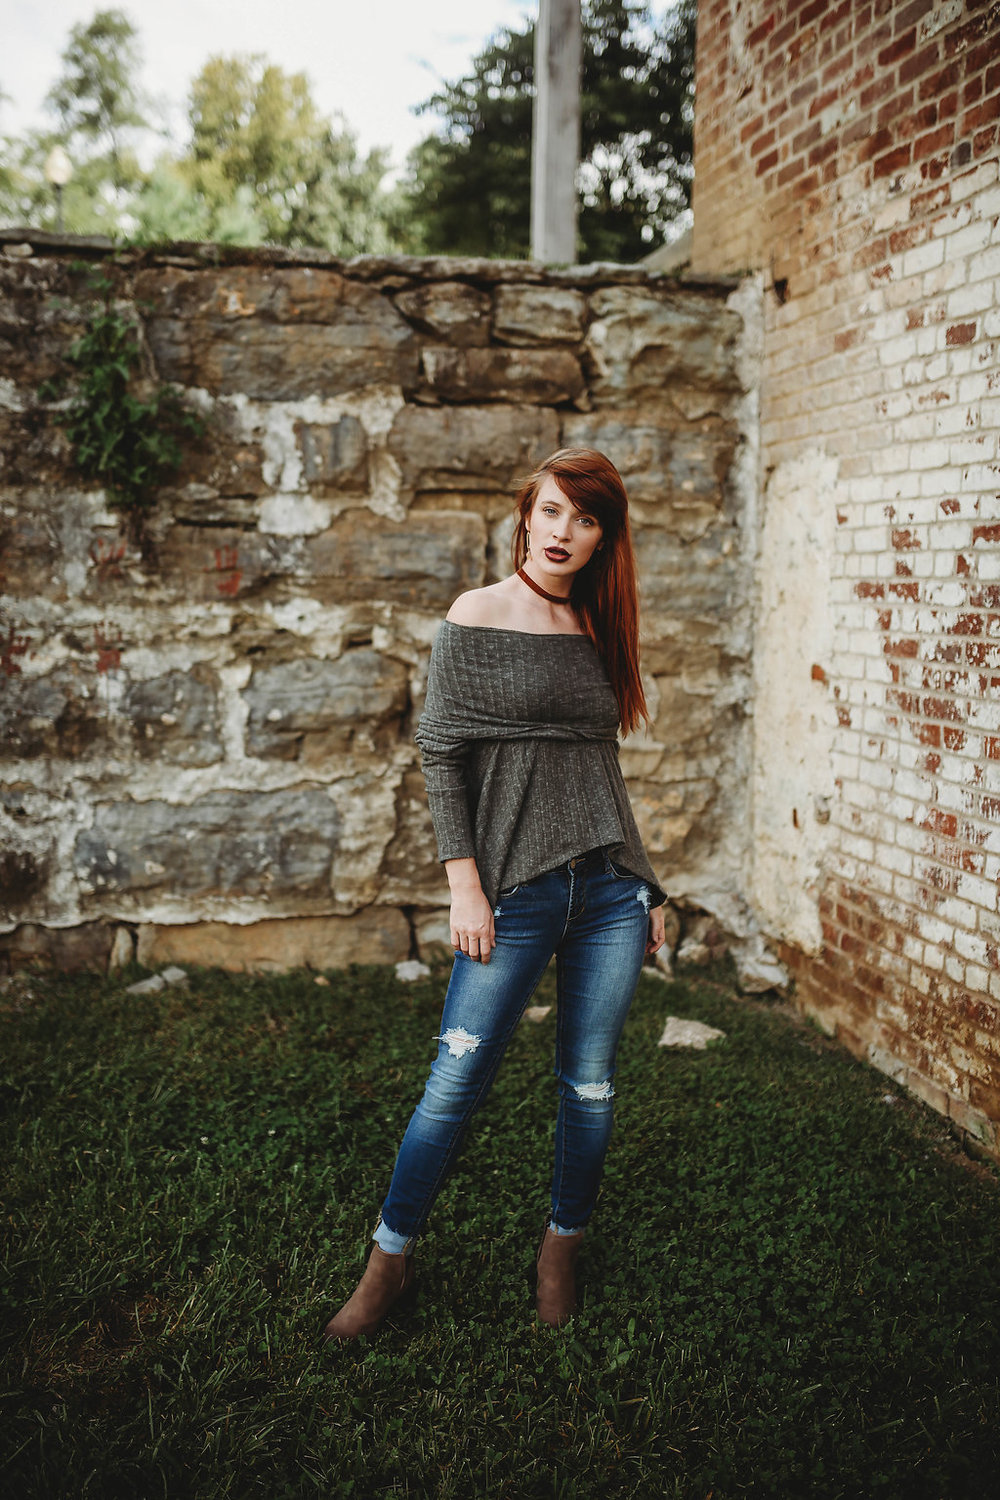 We're wondering if one day this mill will turn into a place of business...I suppose we'll have to wait and see! Get the look at Morgan's on Main: Off-Shoulder Olive Sweater ($32.50) | Destructed Skinny Jeans ($63) | Taupe Booties ($36) Morgan Ships! shop her Facebook and IG